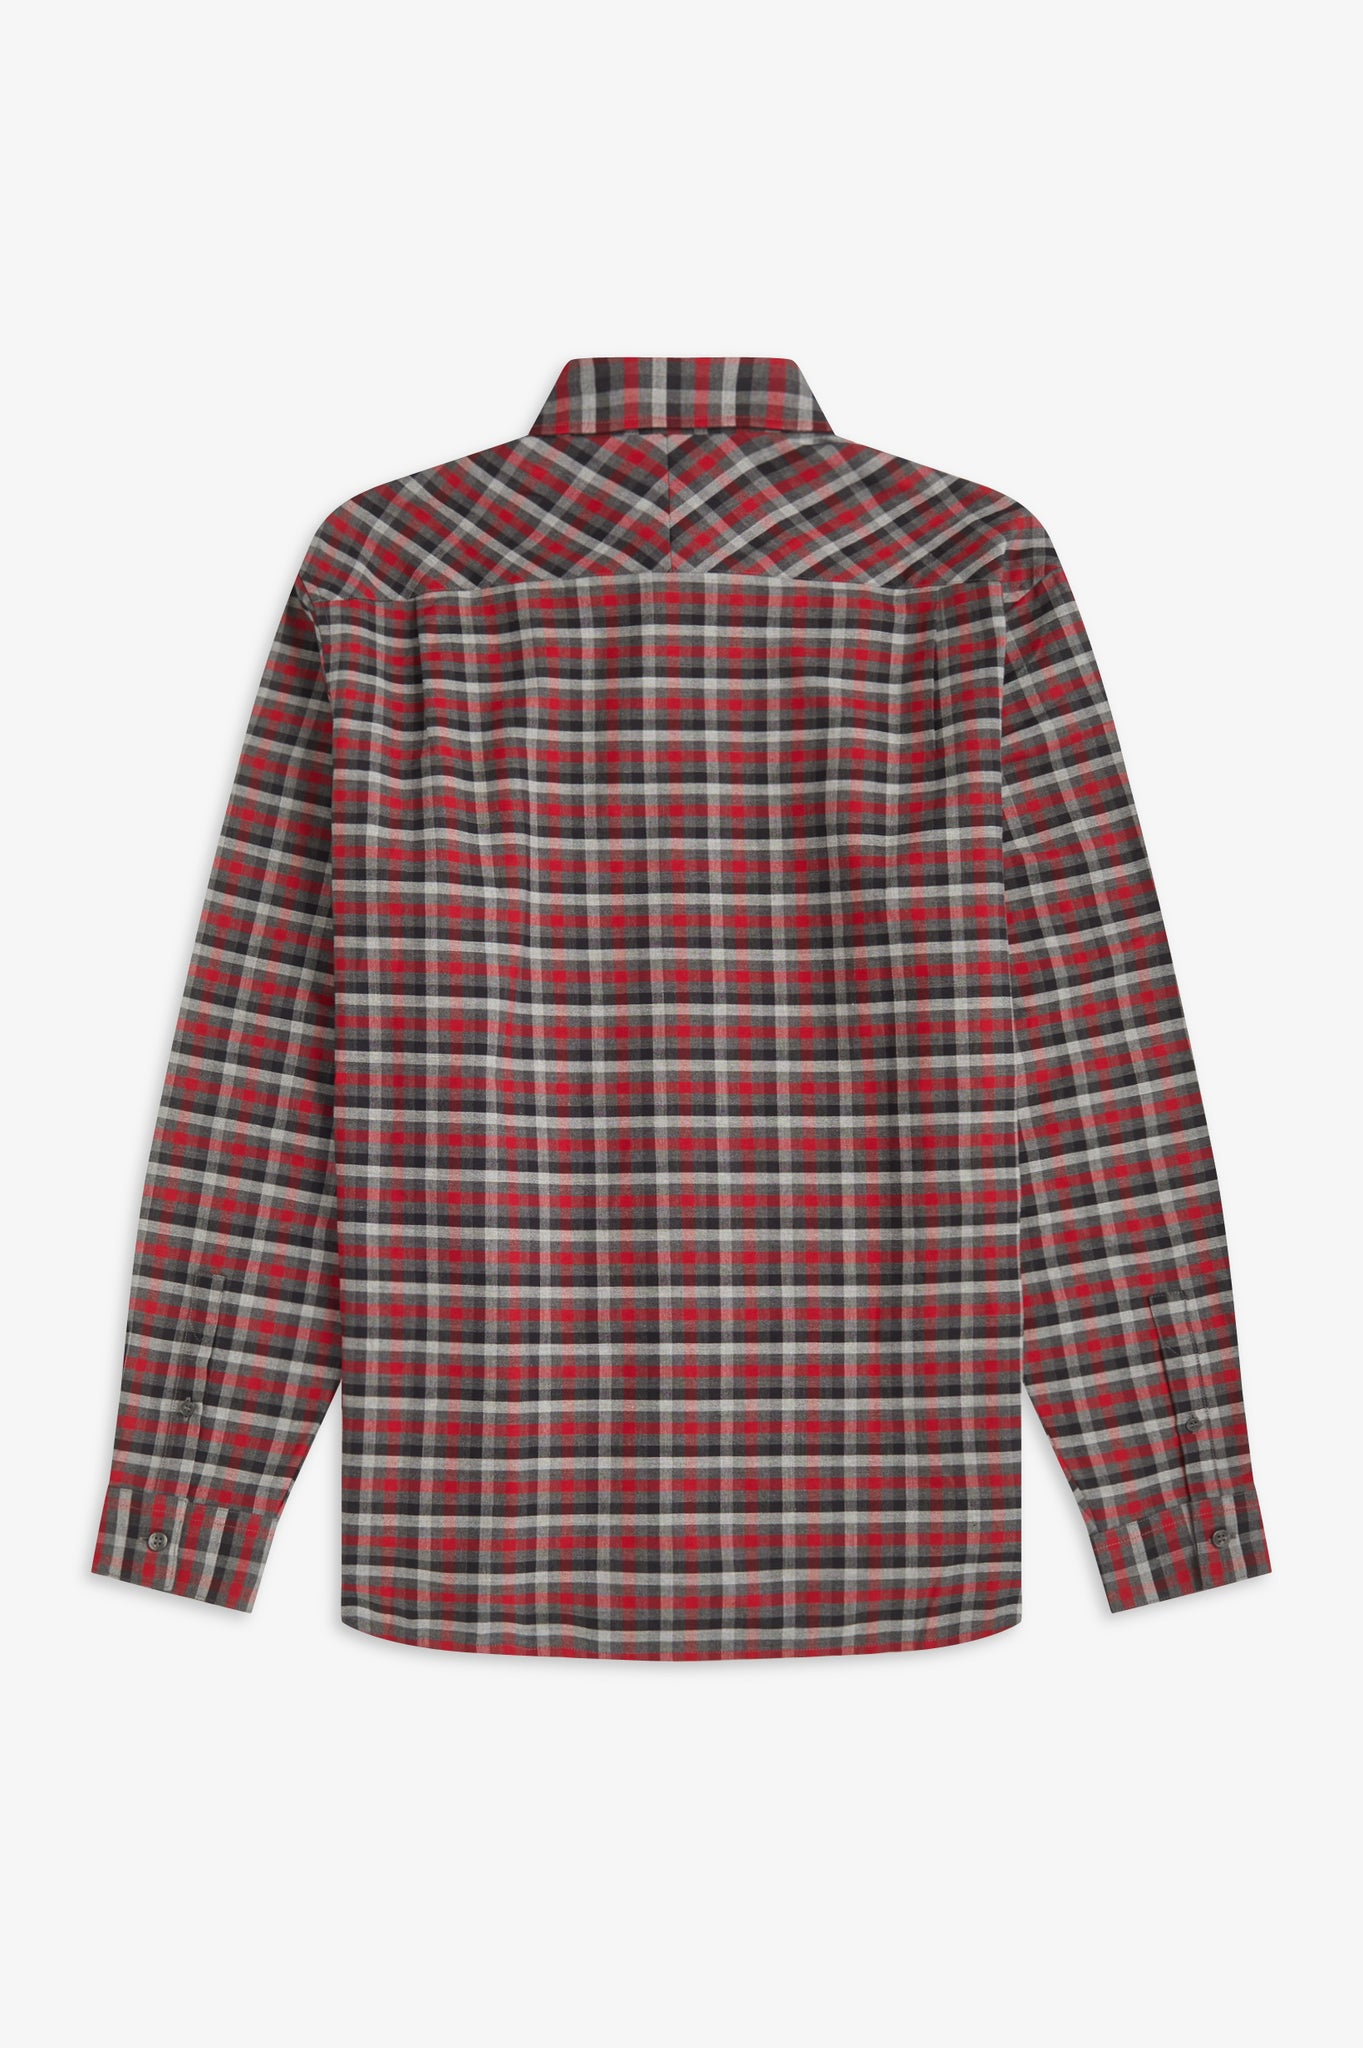 WINTER GINGHAM SHIRT